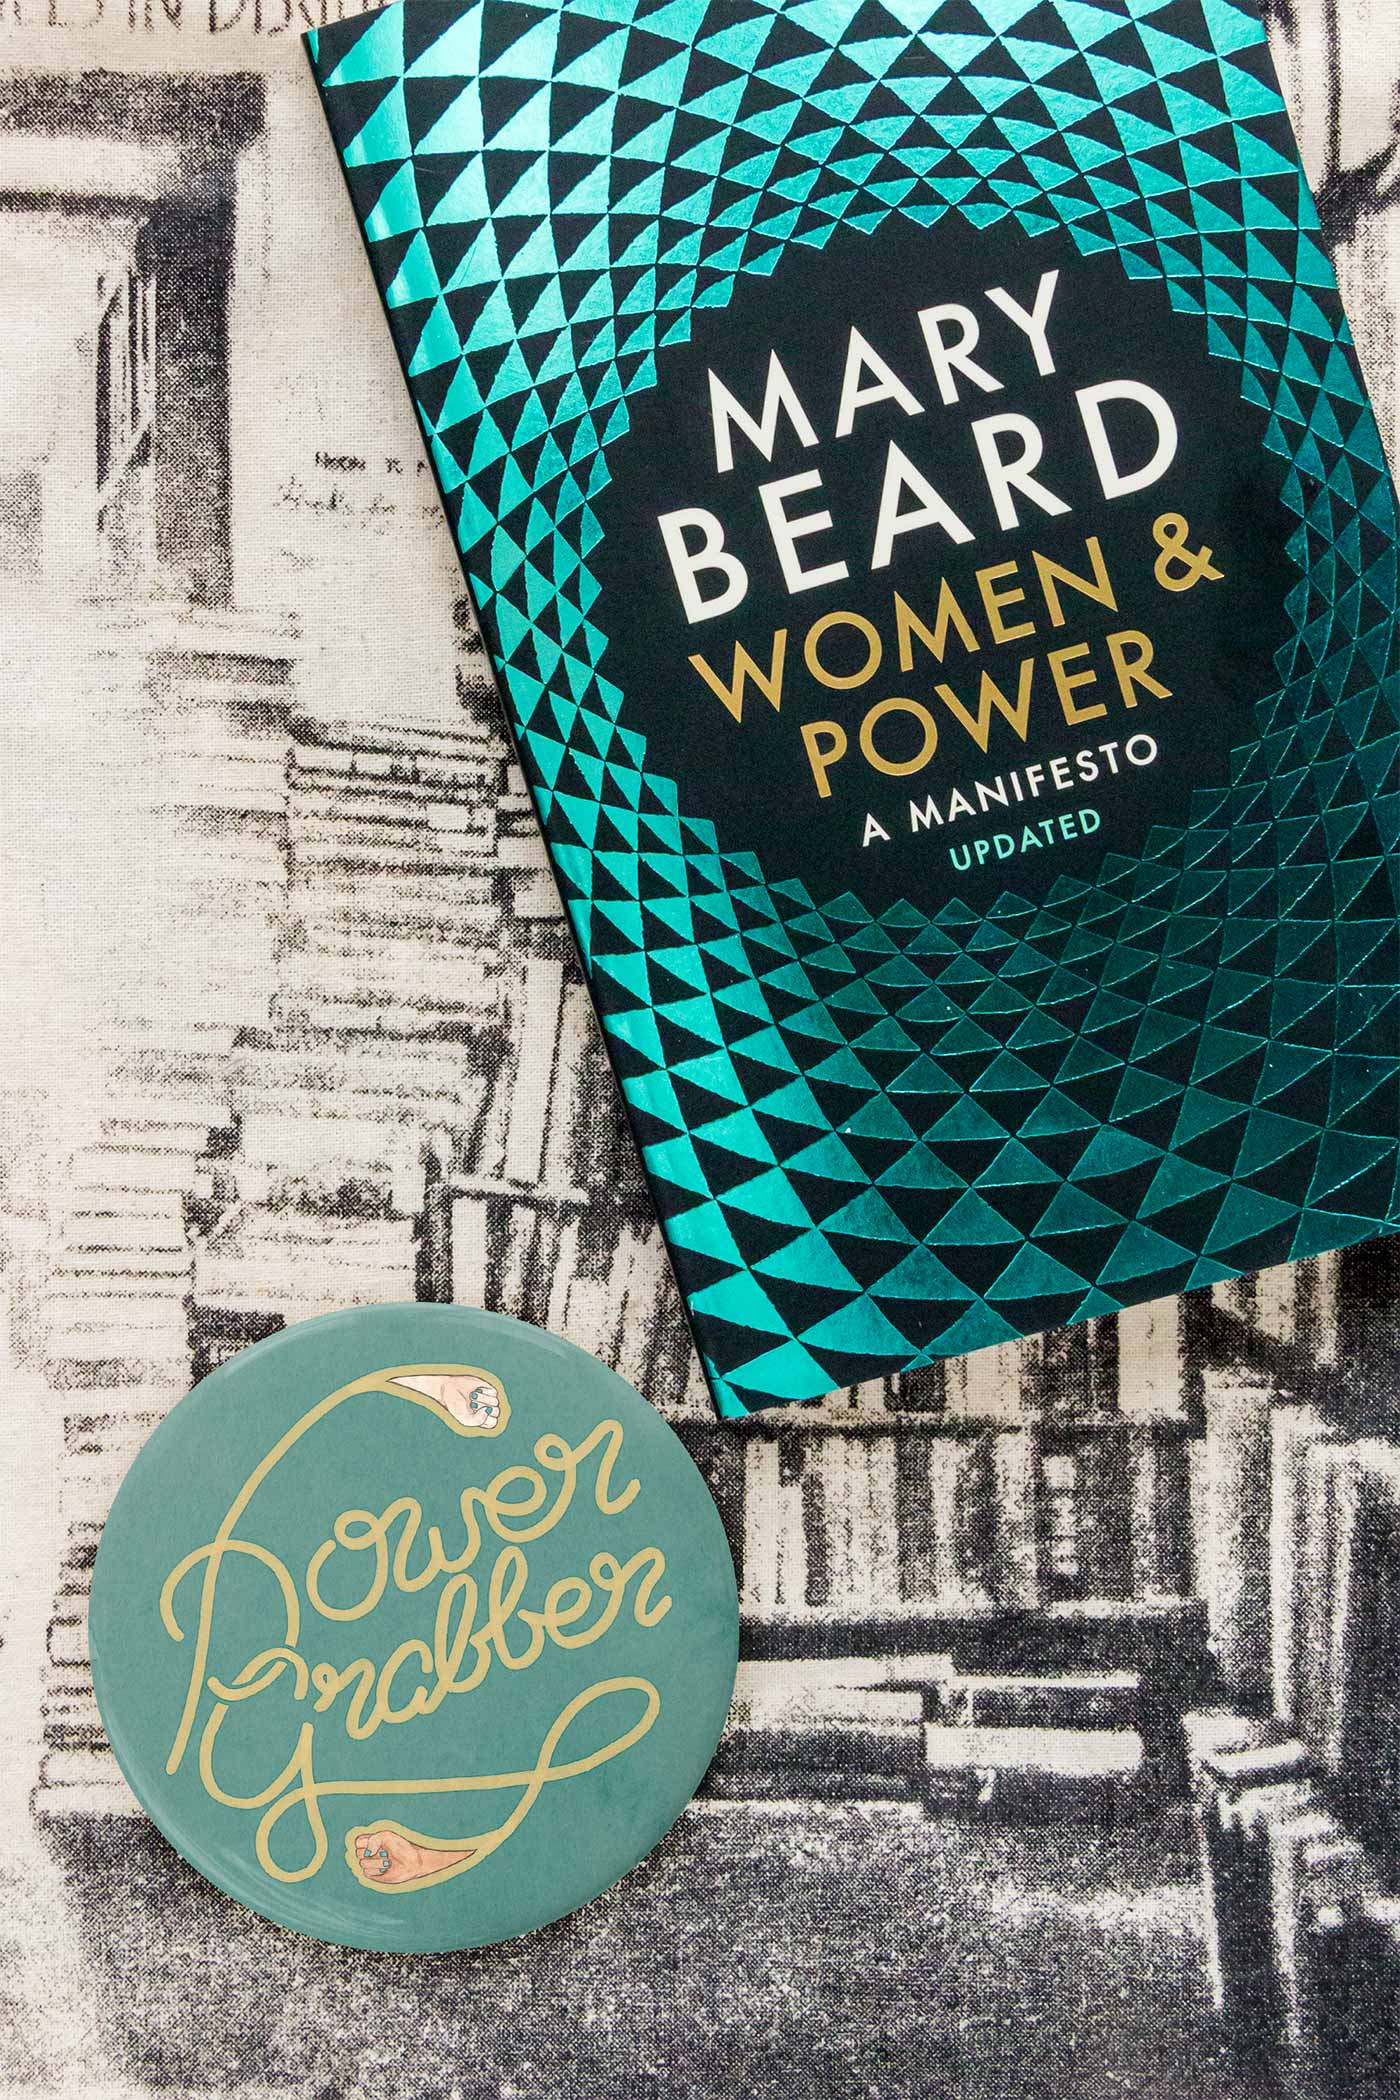 Power Grabber / Mary Beard Power & Women Pocket Mirror